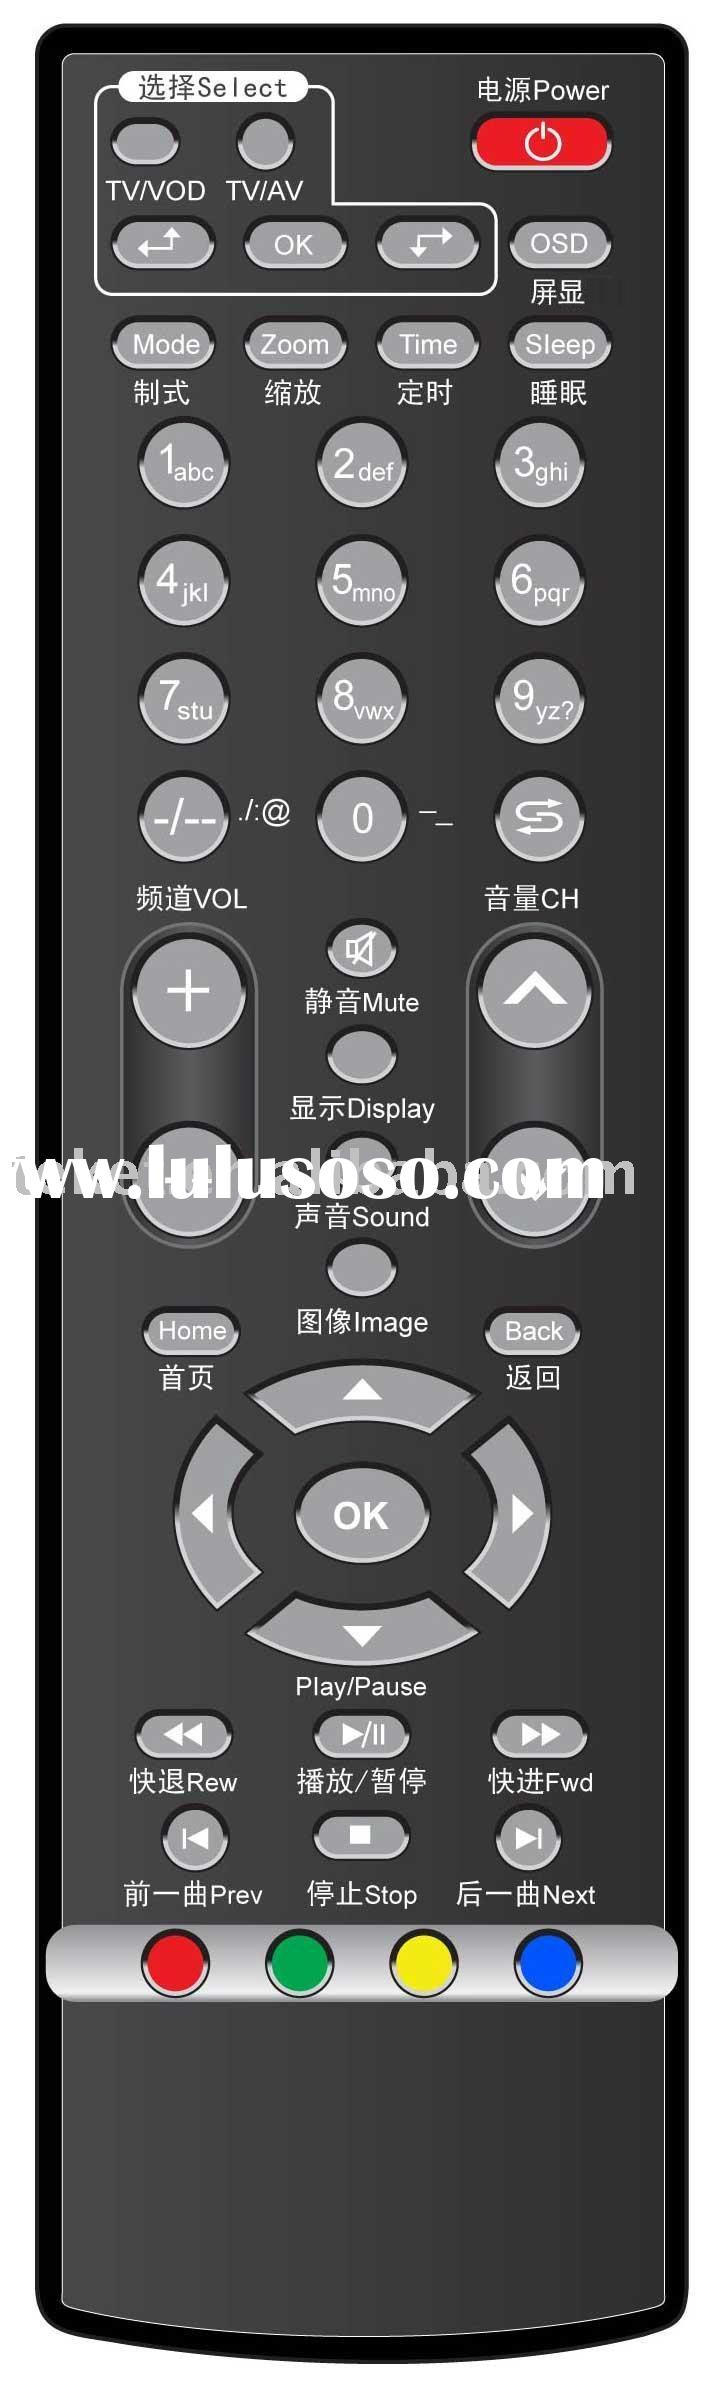 tv remote control, set-top-box stb remote control, two-in-one, tv and stb combo remote control R13